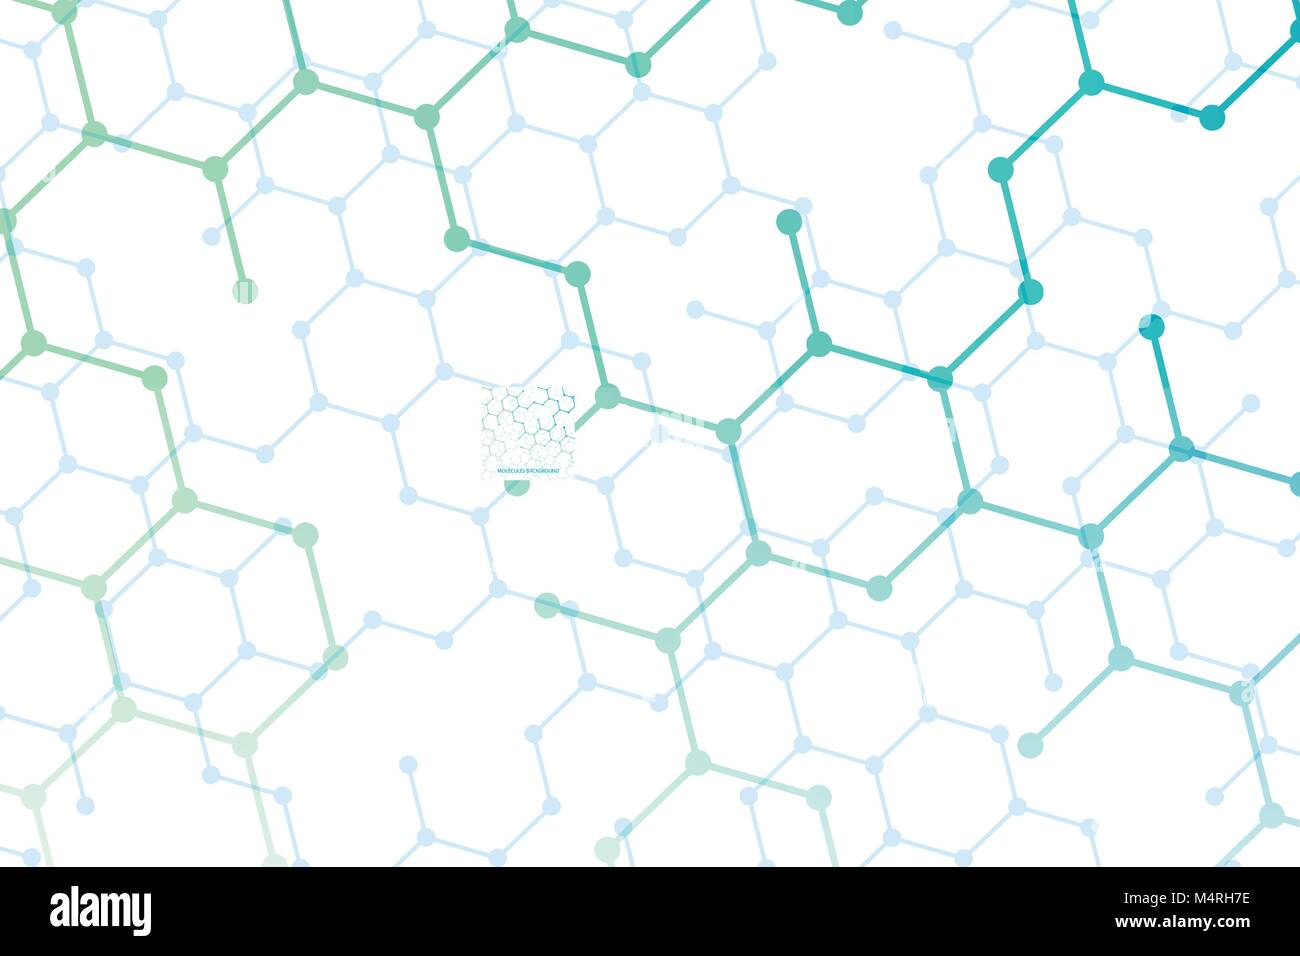 Medical Abstract Geometric Background Template Brochure Design